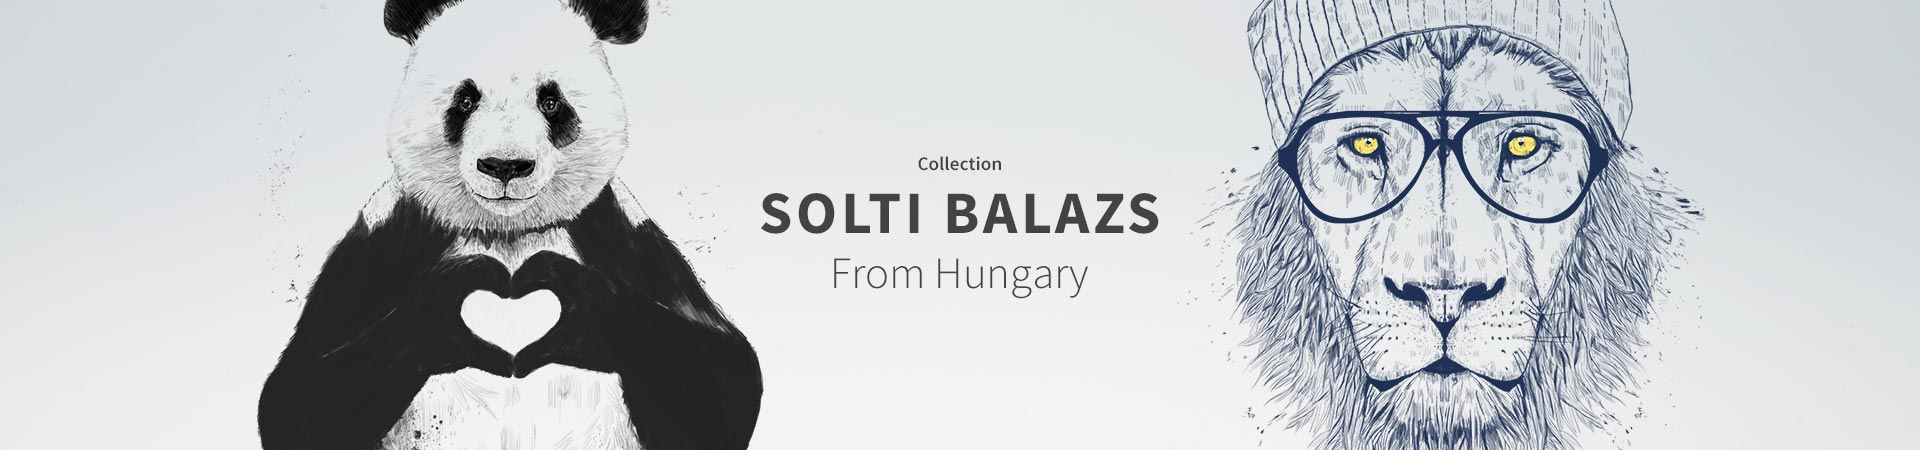 Collection Solti Balazs